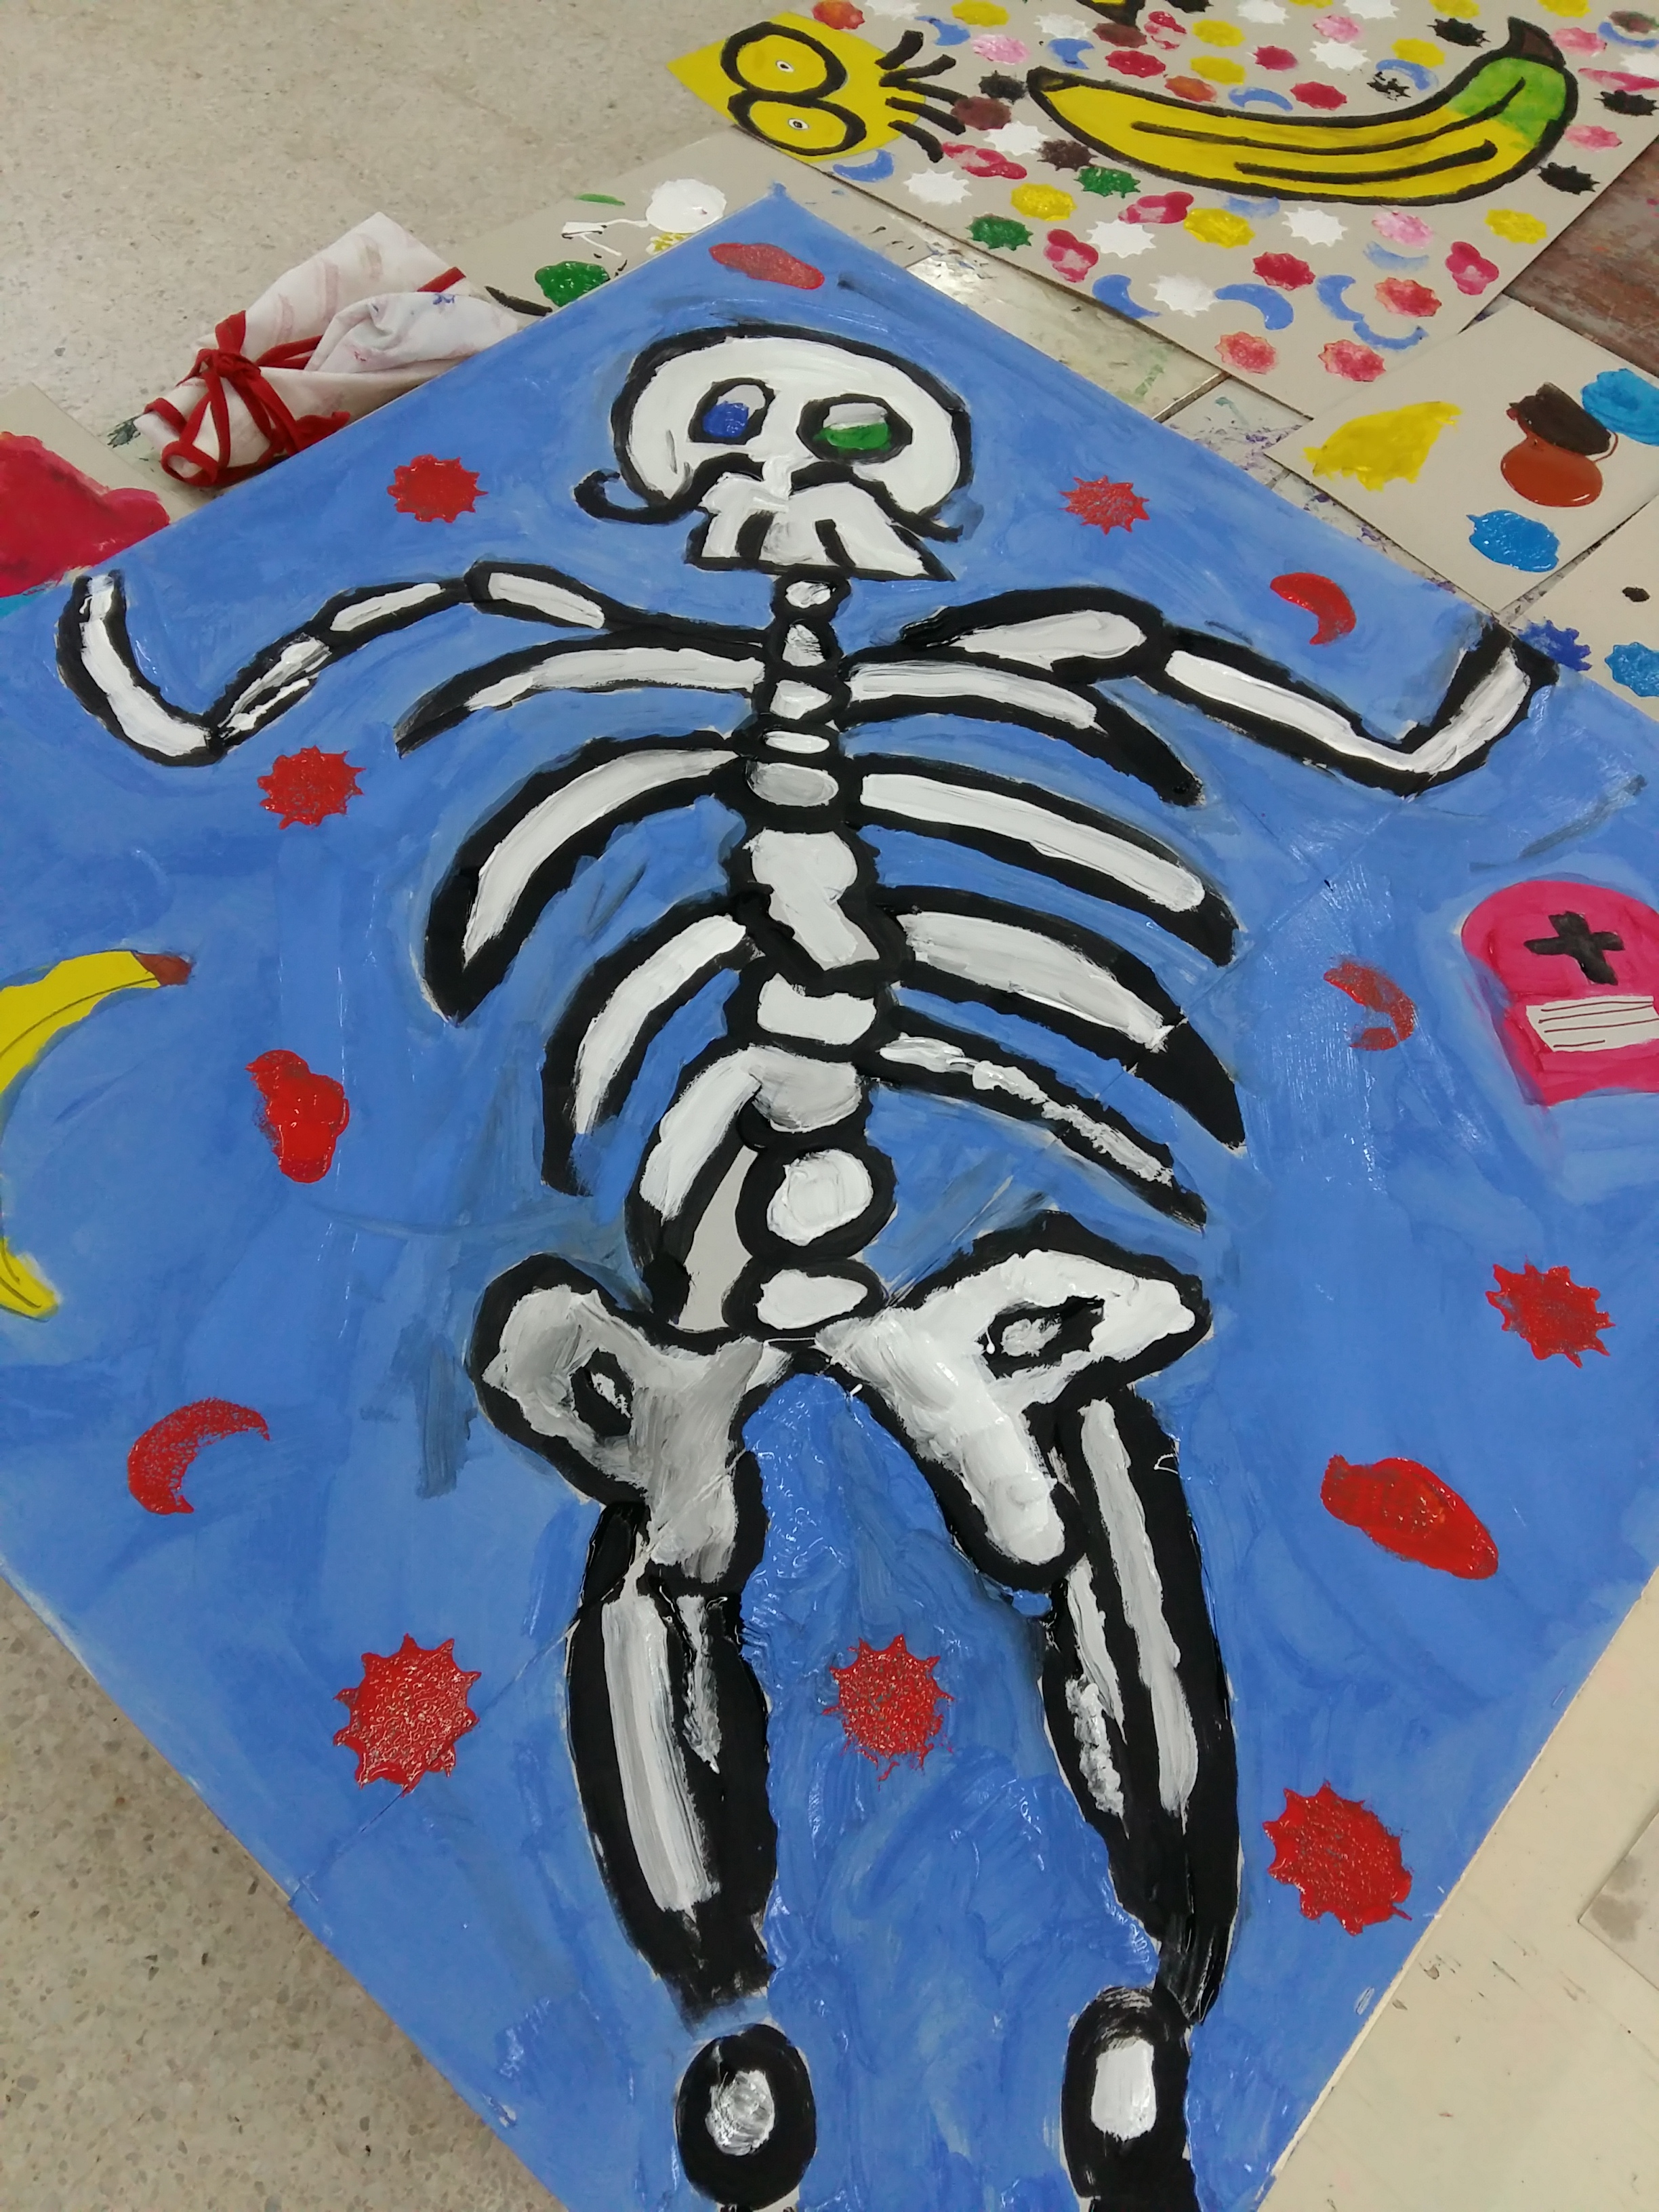 A drawing of a skeleton by the Rabat group.